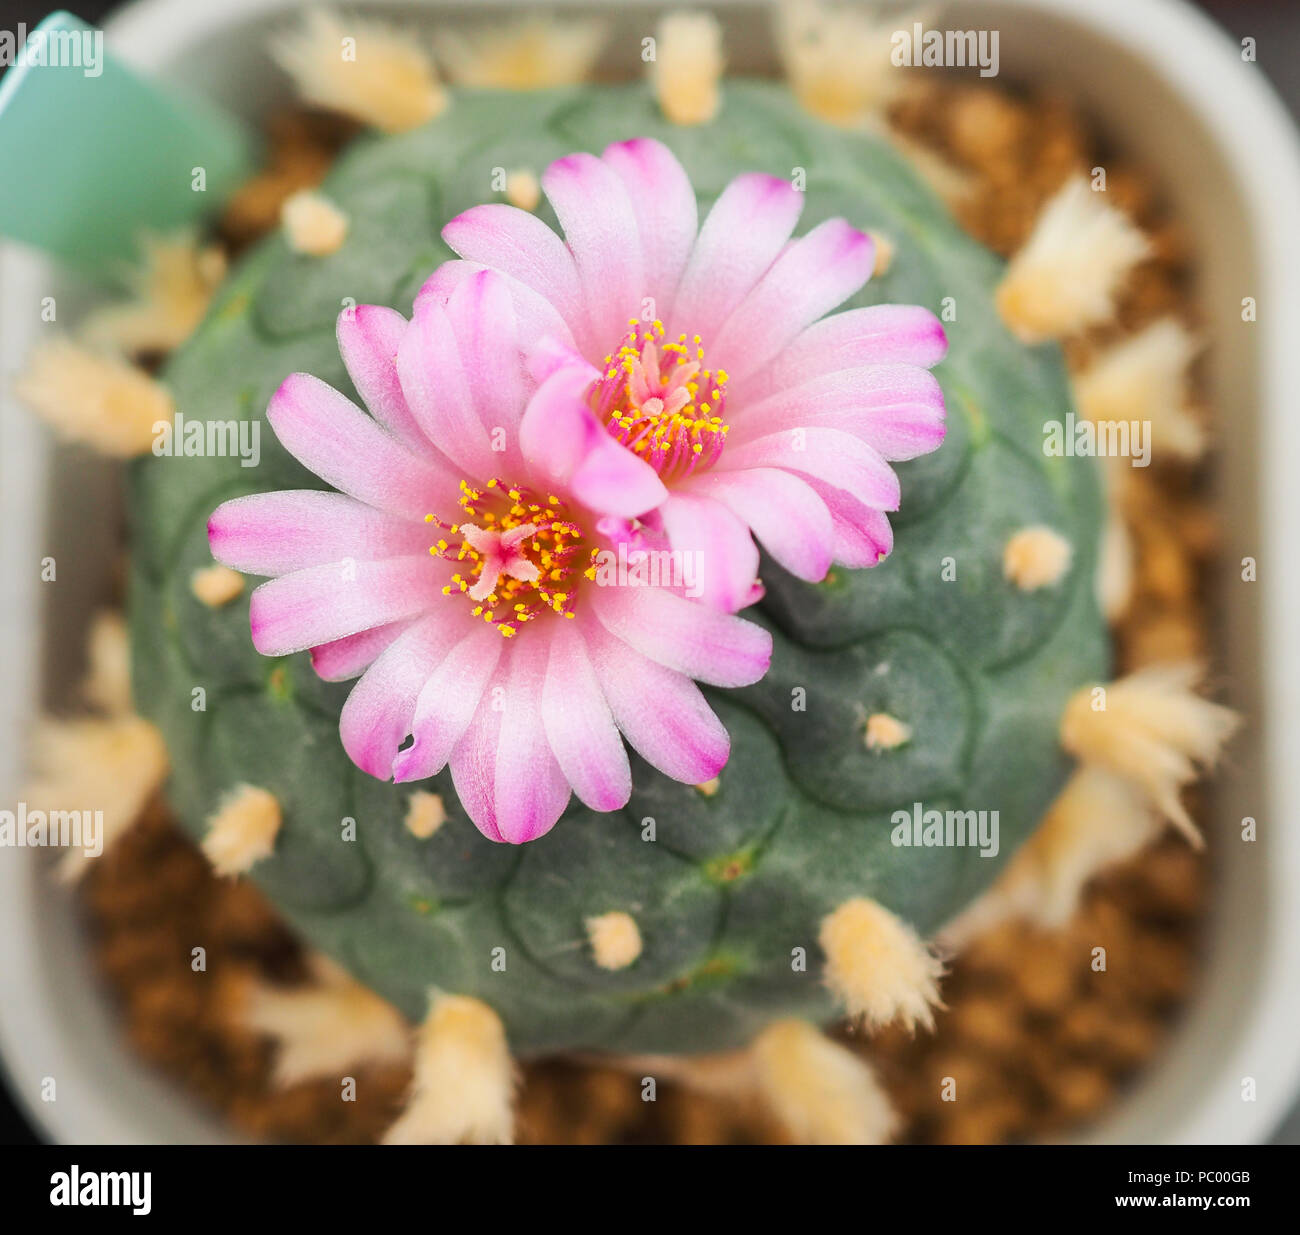 Beautiful Pink Flower Of Cactus In The Small Pot Plant For